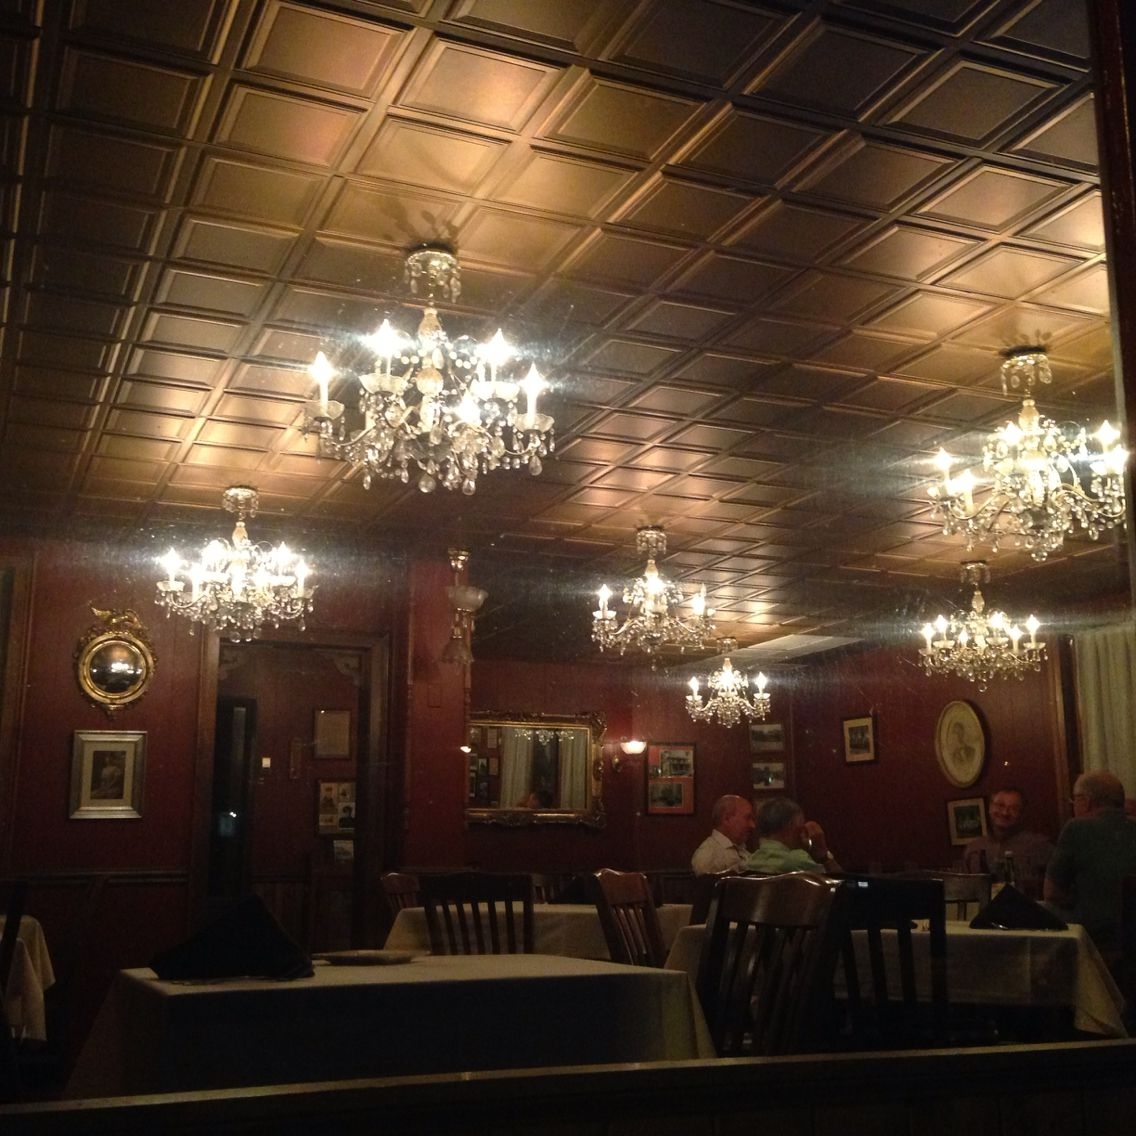 Light Fixtures Intended For Popular Restaurant Chandeliers (View 6 of 15)